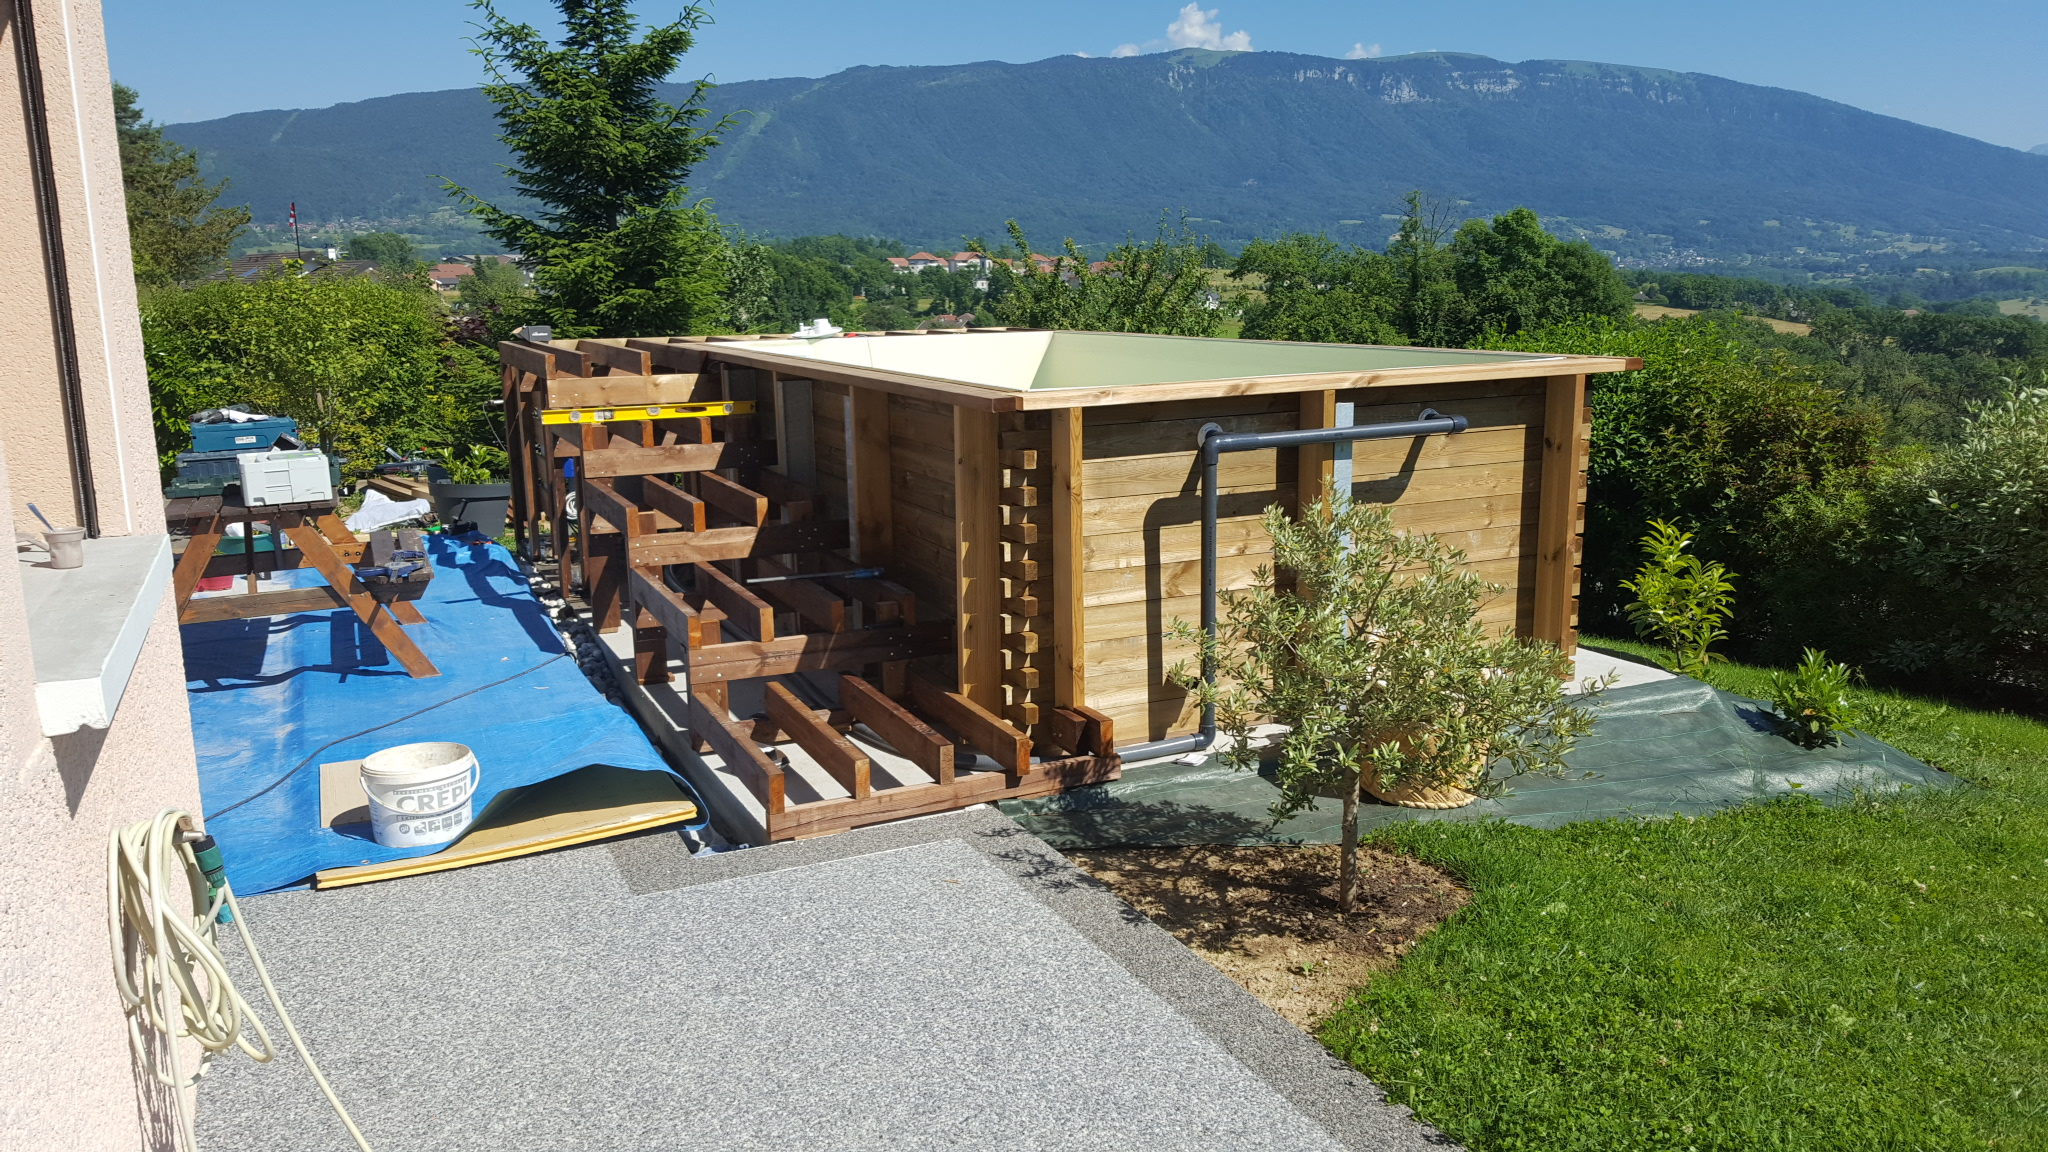 Spa Exterieur Vercors Mini Piscine En Contruction Vercors Piscine